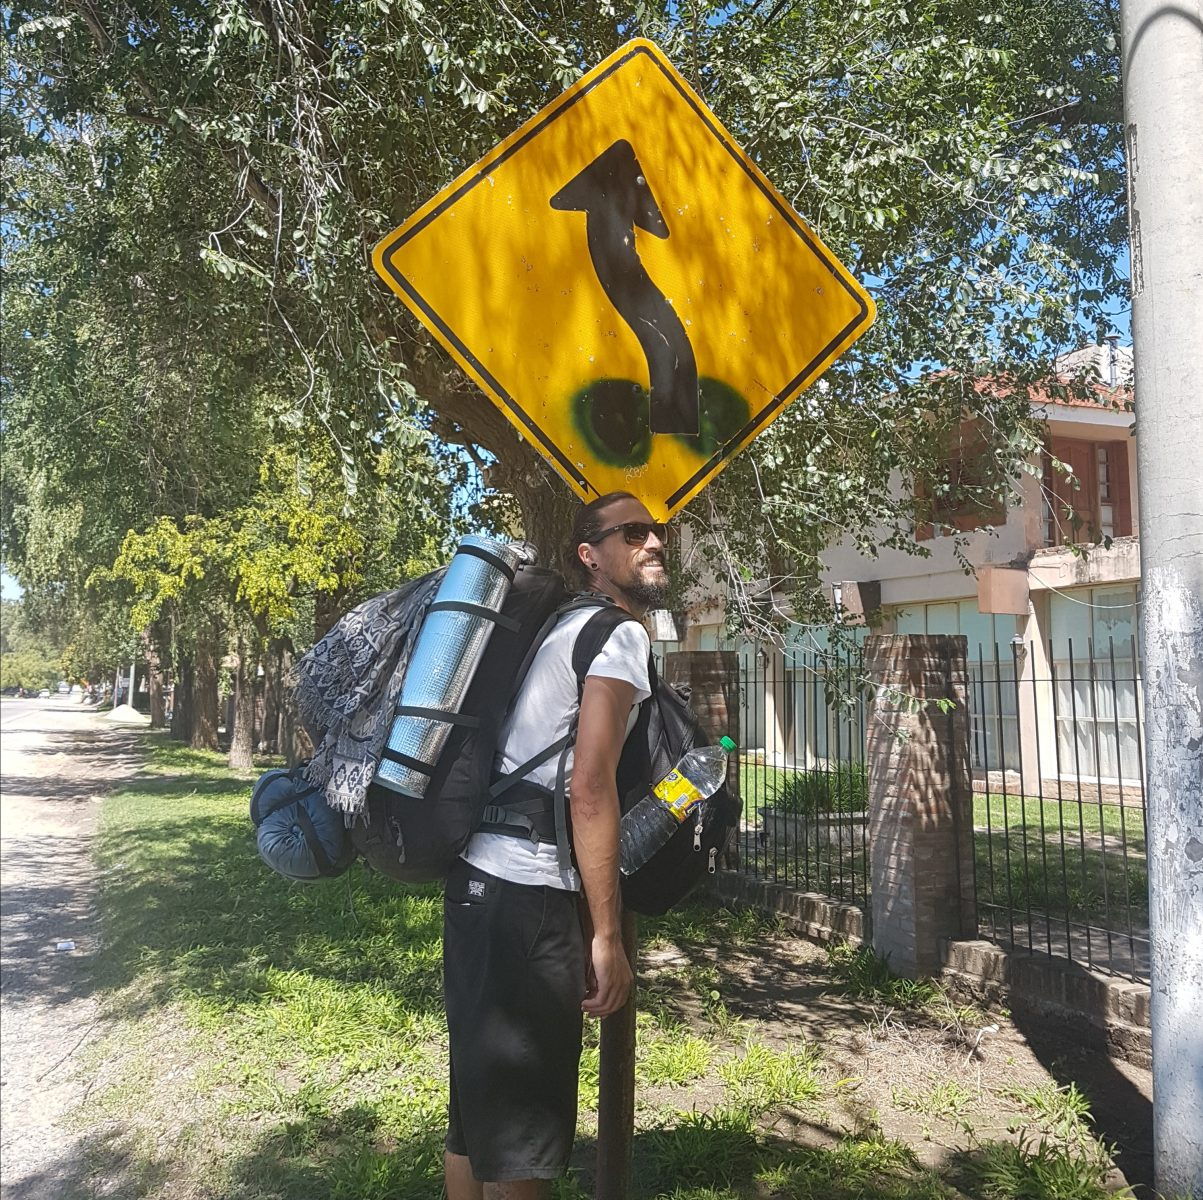 "<img src=""images/"" width=""800"" height=""600"" alt=""hitchhiking - 20180412 210016 1 - Argentina: Hitchhiking from Cordoba to Buenos Aires"">"